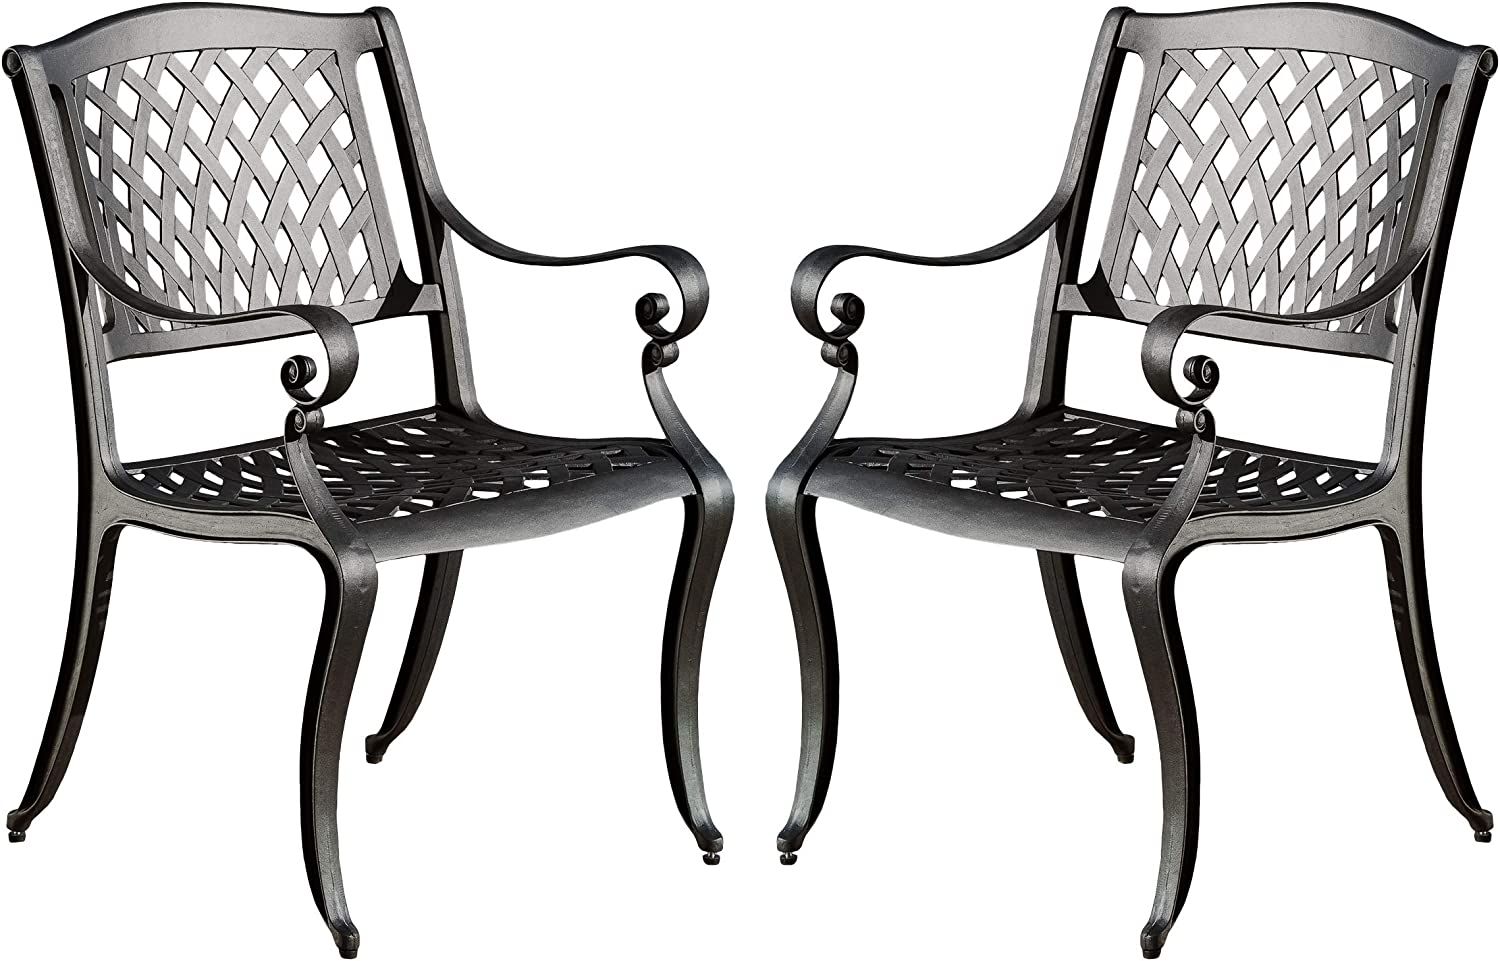 Christopher Knight Home Hallandale Outdoor Cast Aluminum Chairs, 2-Pcs Set, Black Sand: Garden & Outdoor